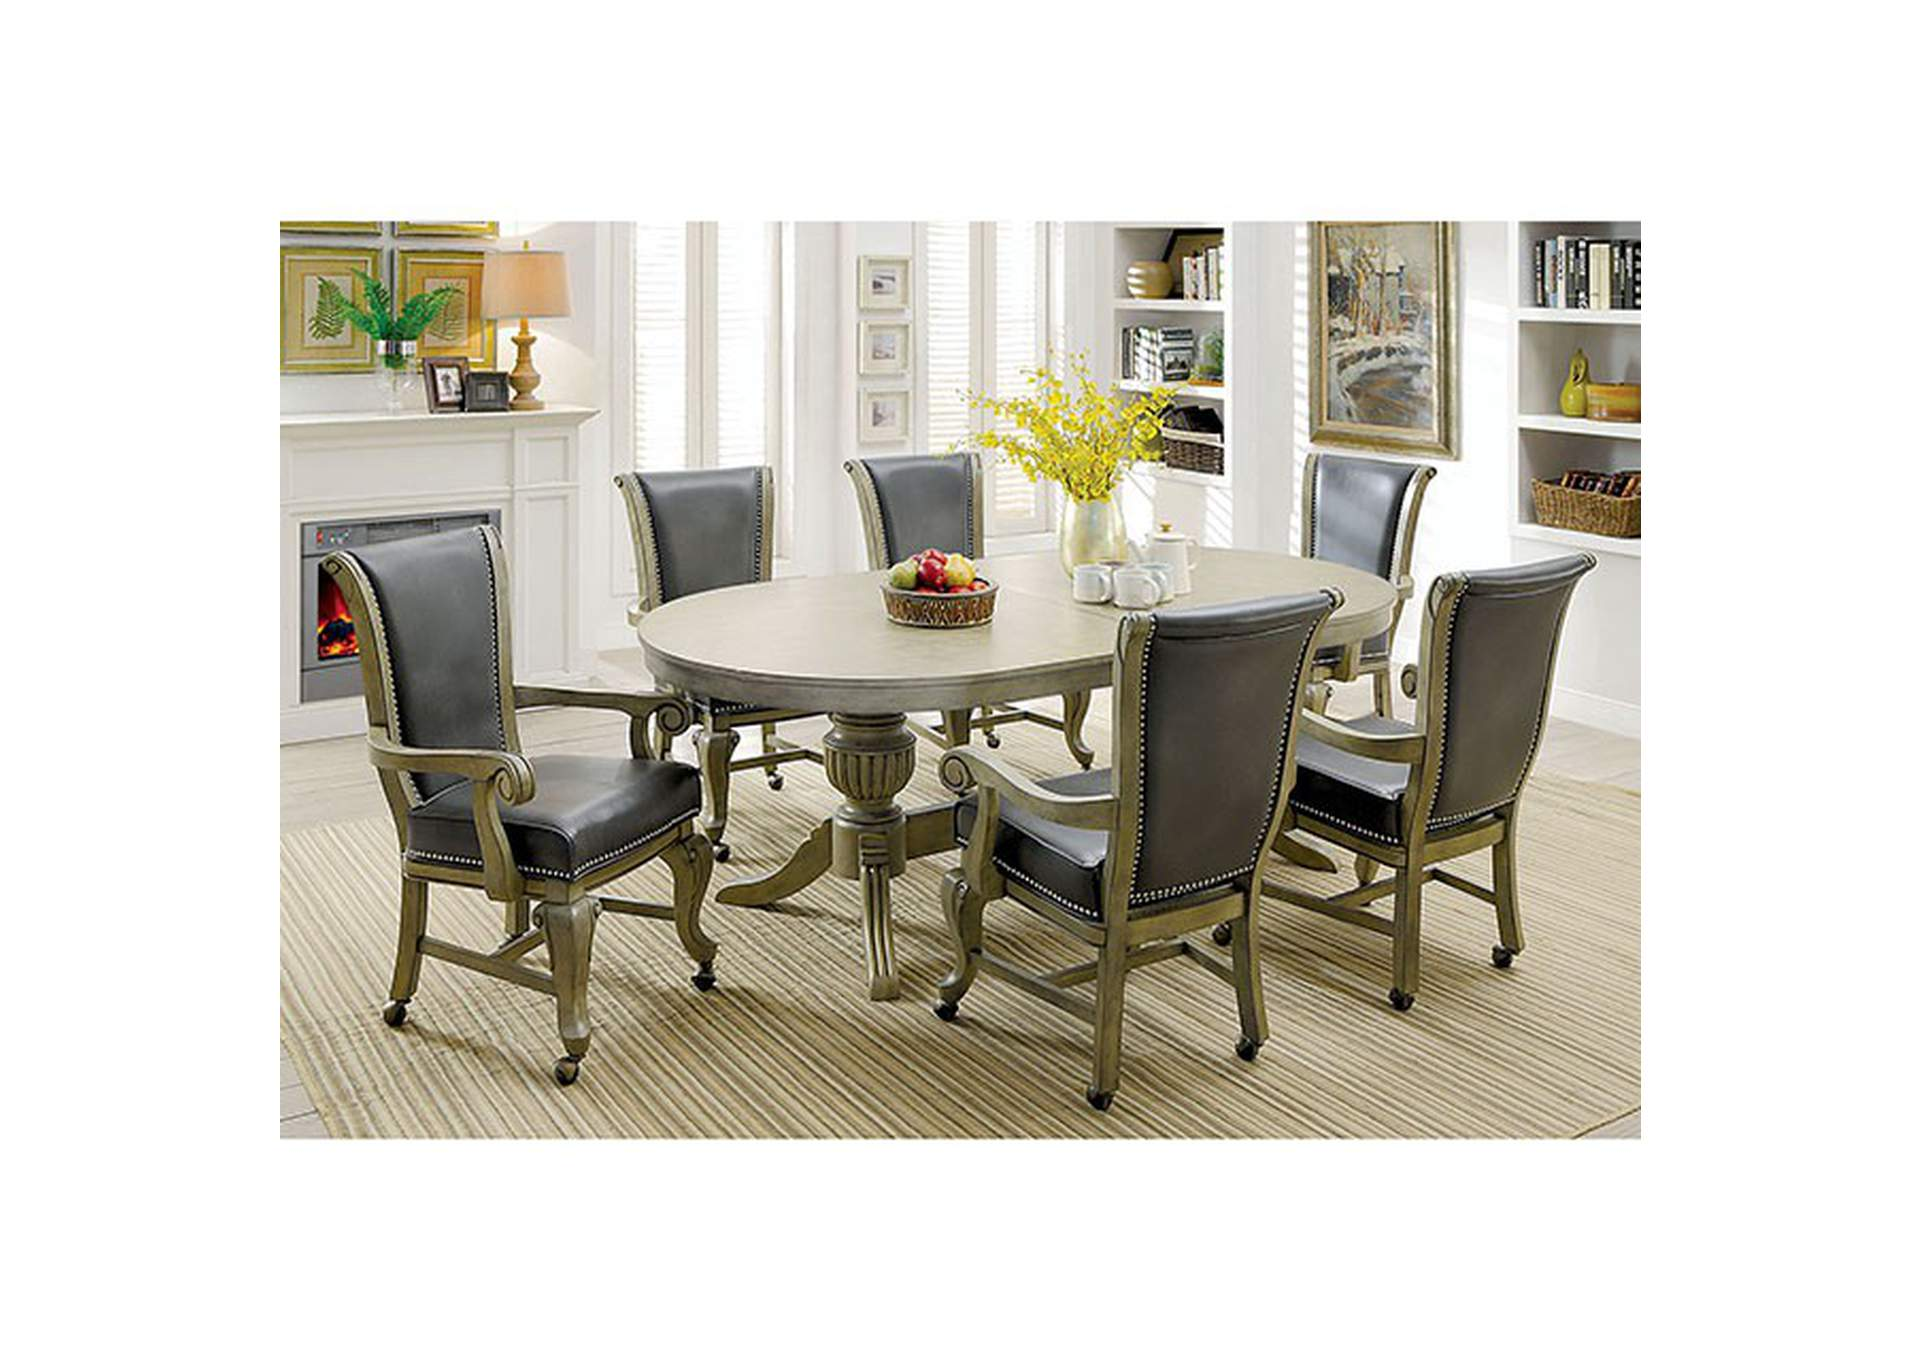 Melina Gray Game Table w/6 Arm Chairs,Furniture of America